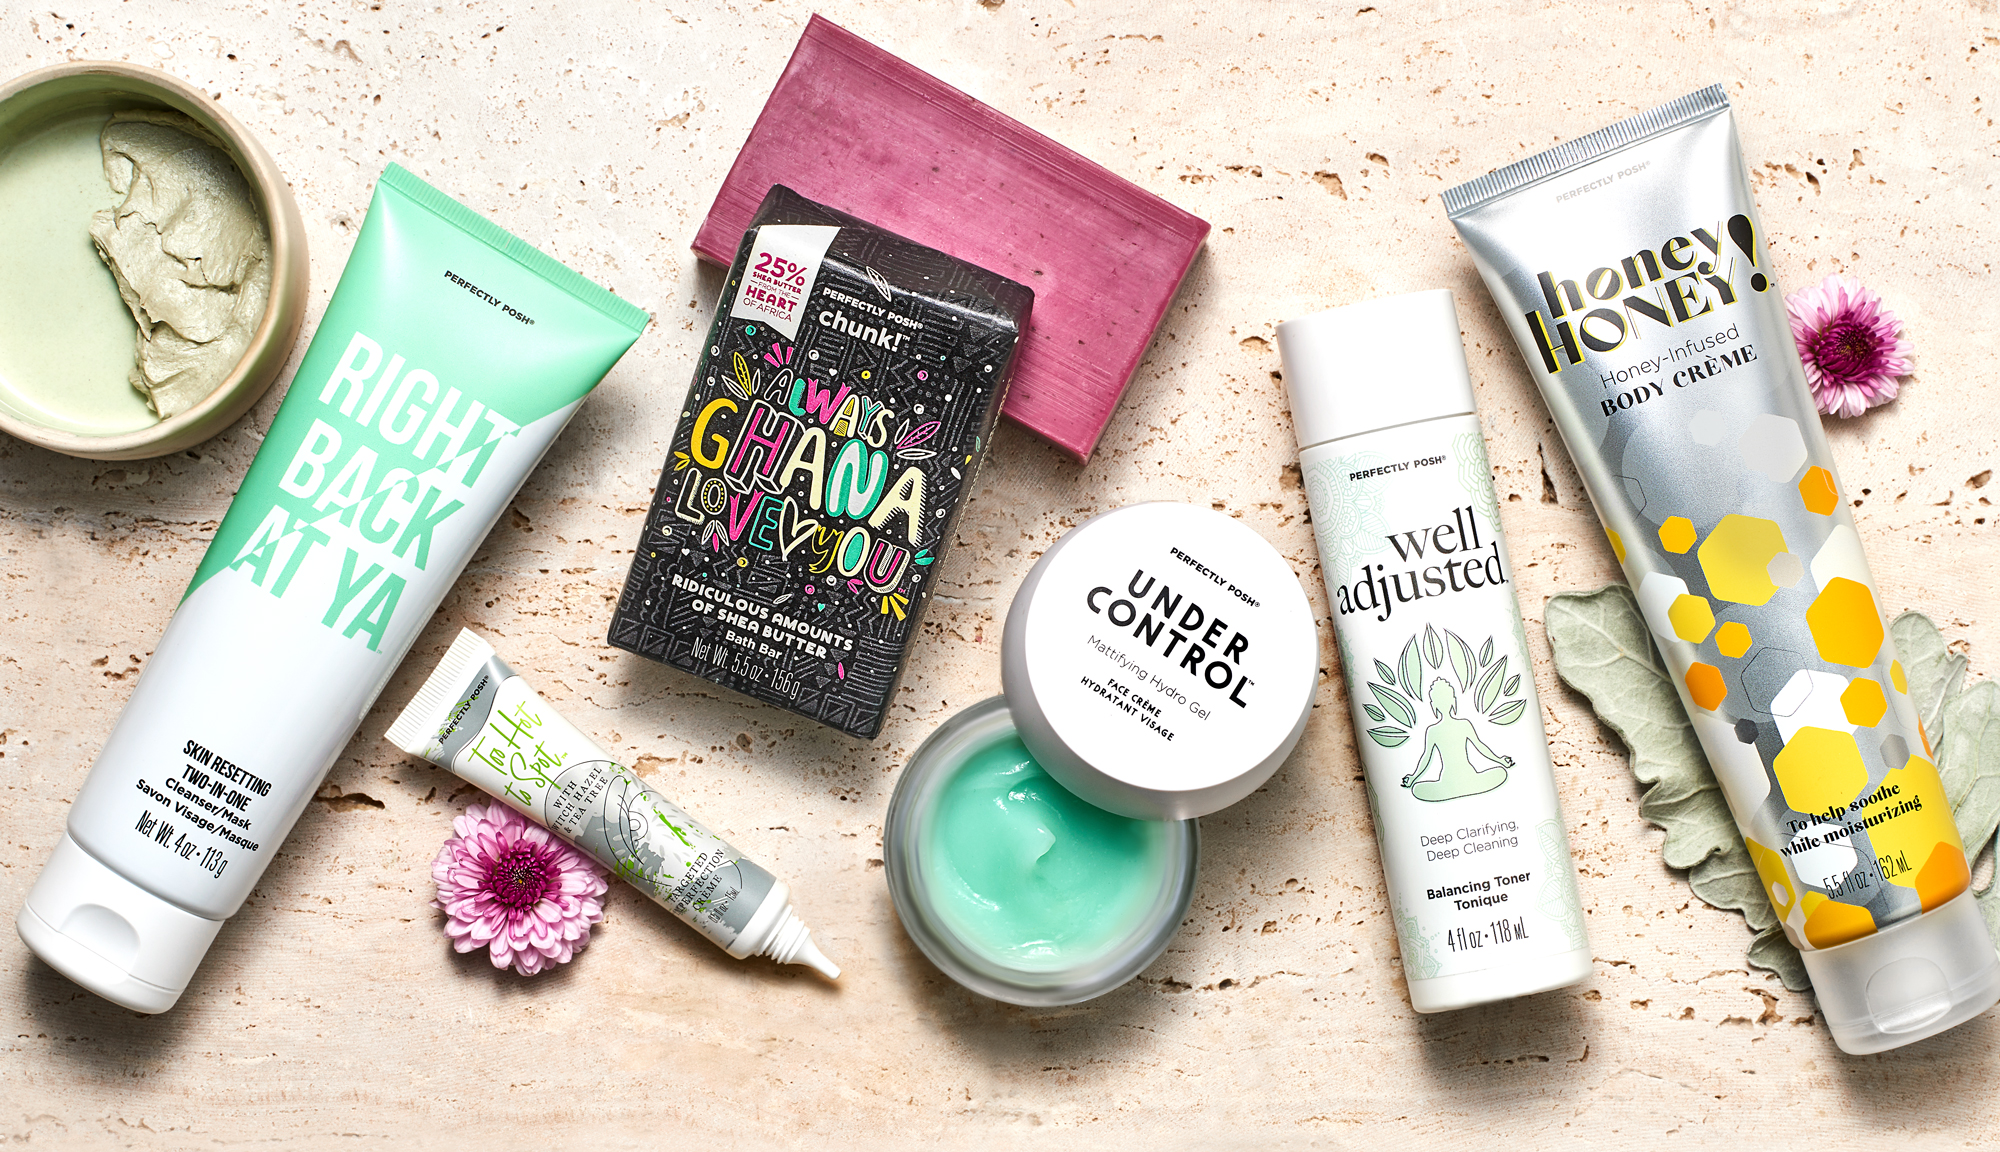 Perfectly Posh Buy 5 Get 1 Free promotion with code B5G1 on qualifying orders